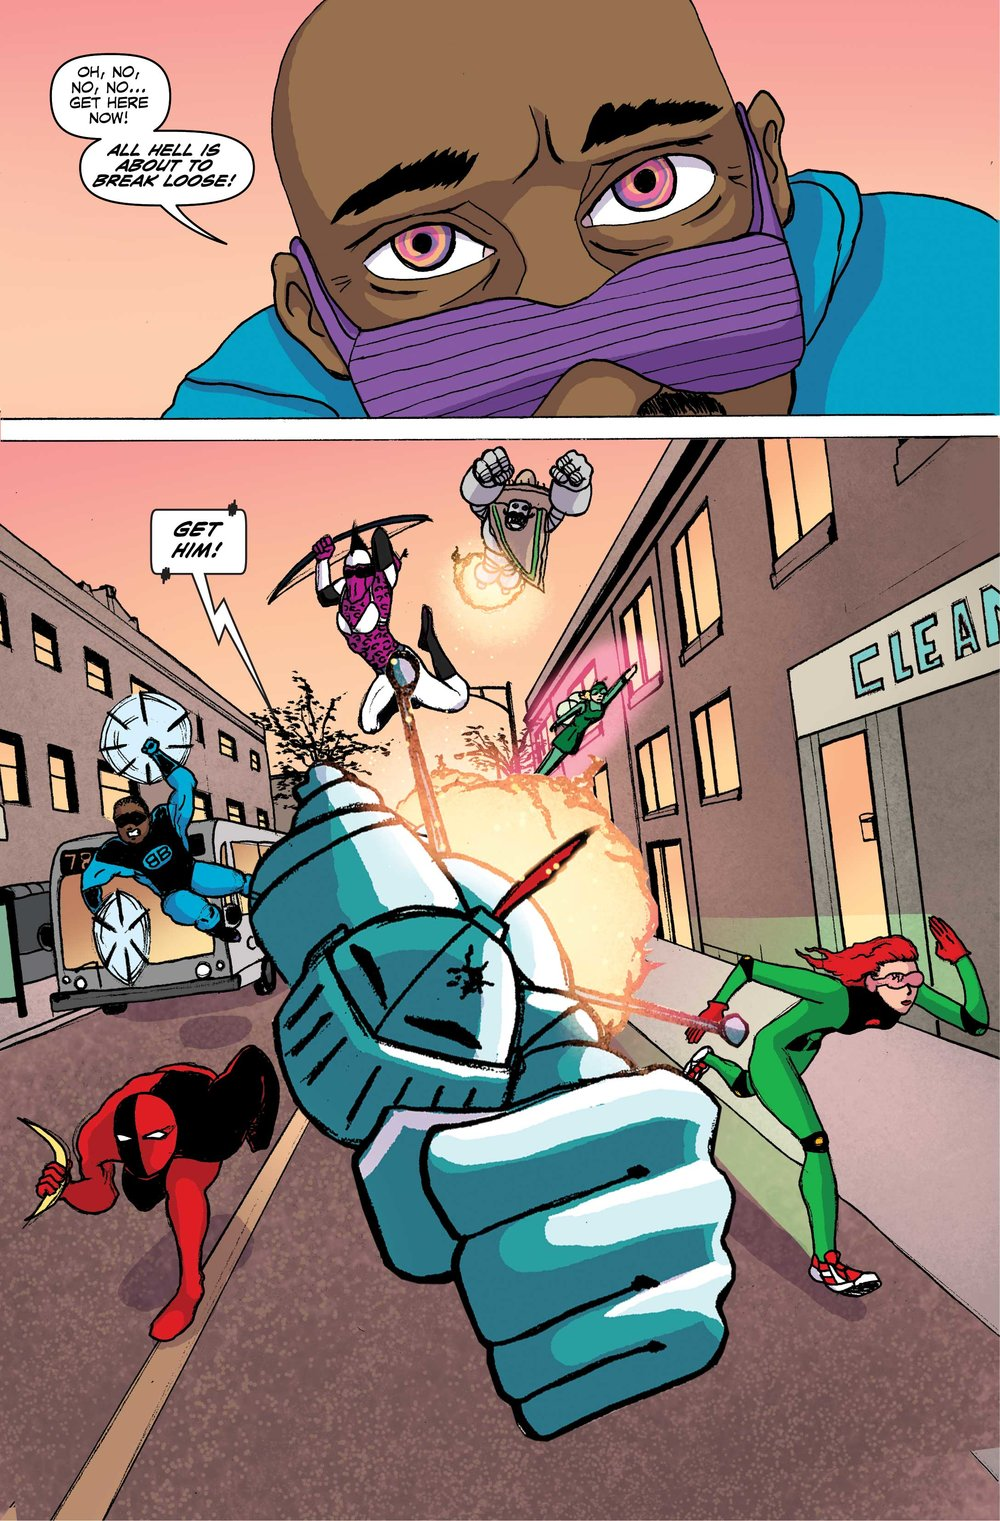 PAGE 21 Panel 1. Close up of Mood Ring pulling his glasses down. He is a black man wearing a blue hoodie with purple sleeves. His eyes swirl a multicolored glow behind the sunglasses. MOOD RING: --Oh no… cancel that! Get here ASAP all hell is about to break loose. Panel 2. Jet Knight, Gnat, Skidz, DD, Green Guy, Roboto Muchacho and several other heroes are flying in attack formation towards Roosevelt.